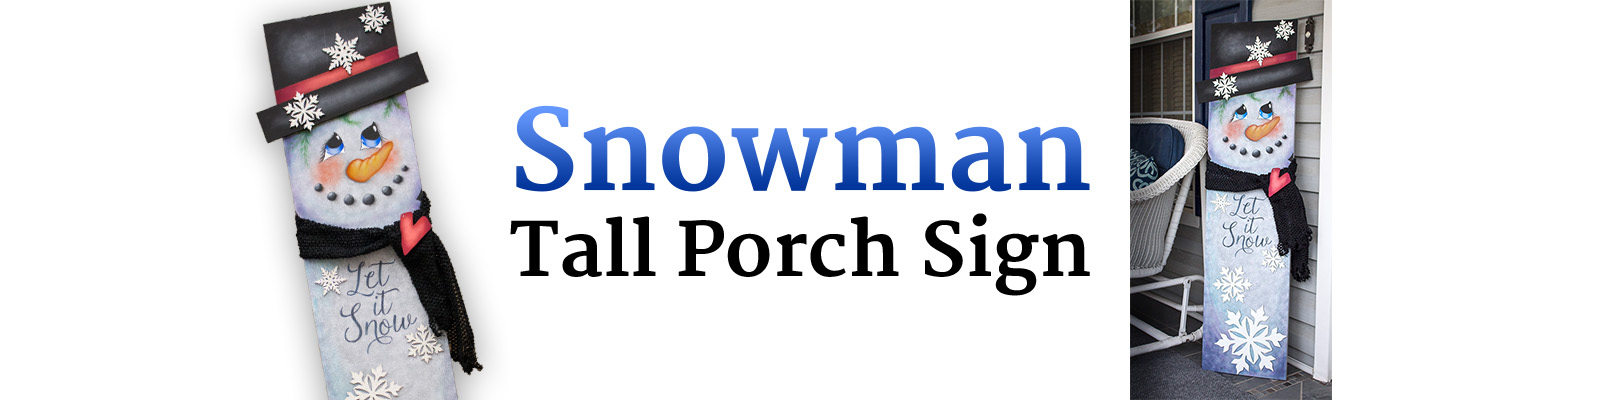 snowman-porch-sign-banner.jpg